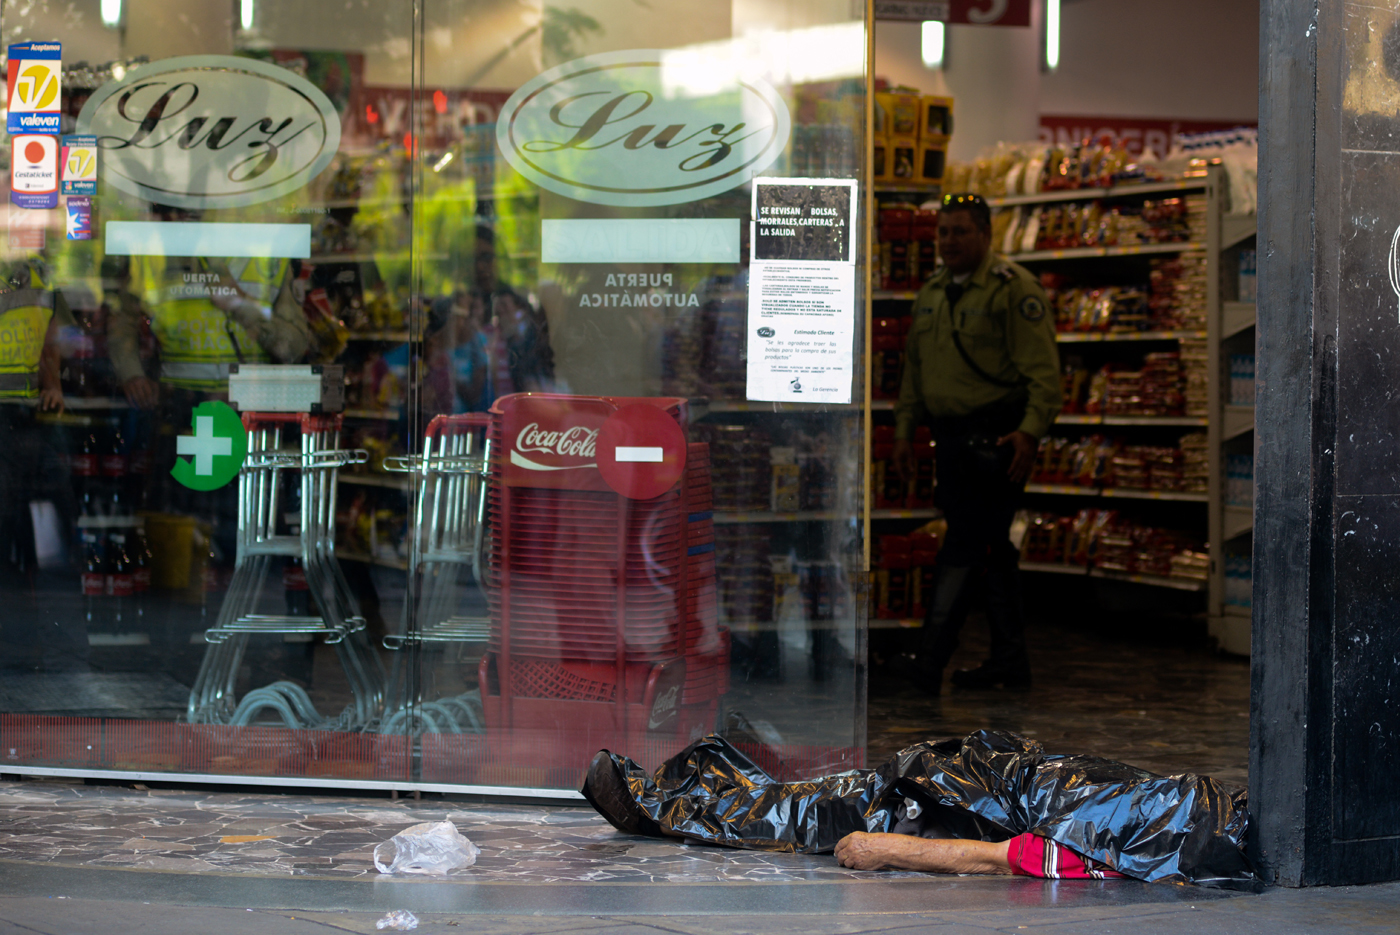 The body of a man lies outside a supermarket, where he died of a heart attack after waiting in a long line to buy food, in Caracas on March 30, 2017. / AFP PHOTO / FEDERICO PARRA